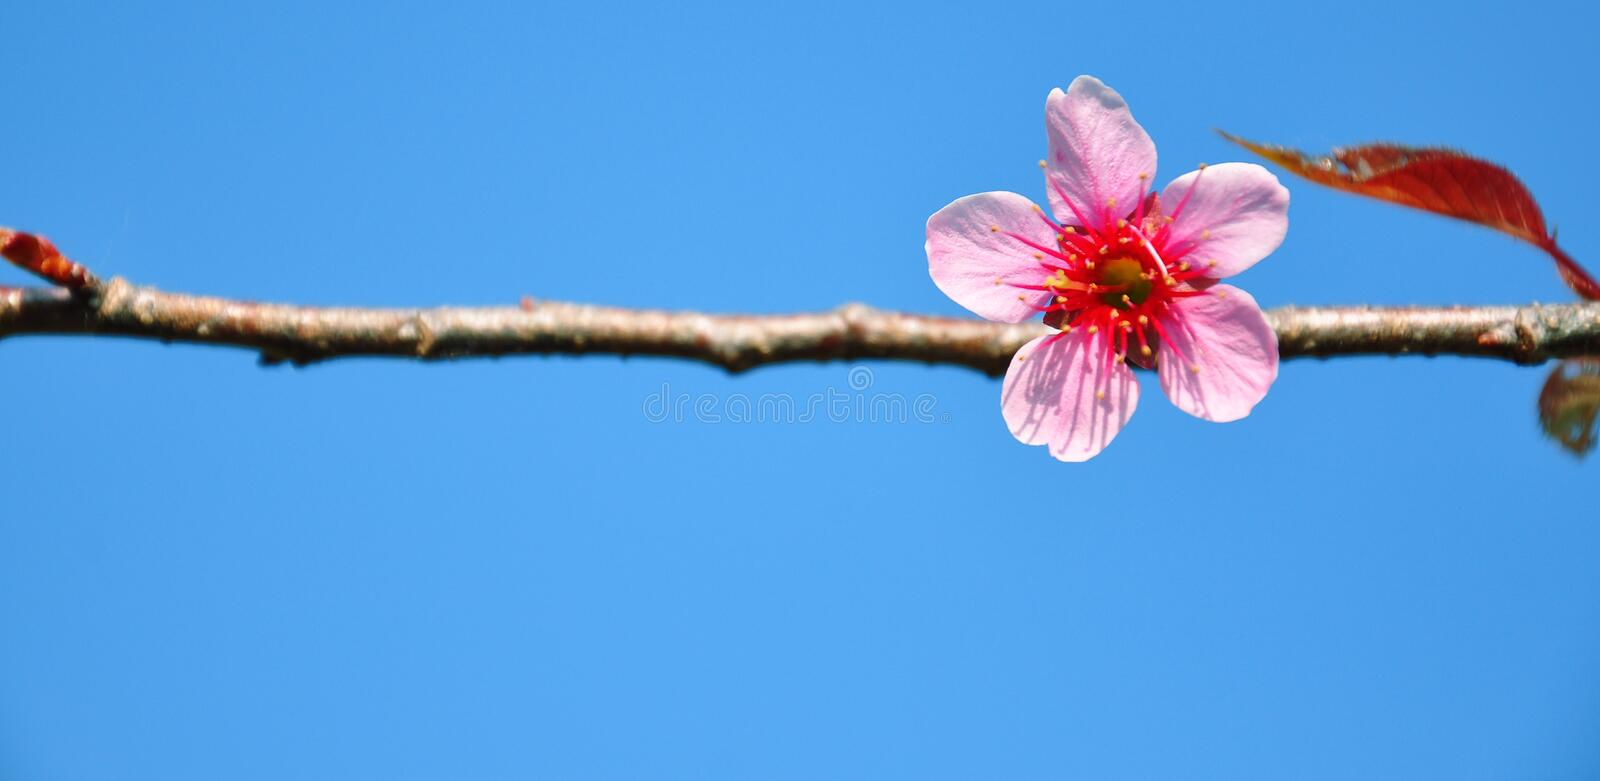 Download Cherry Blossom stock image. Image of closeup, flora, floral - 39511657